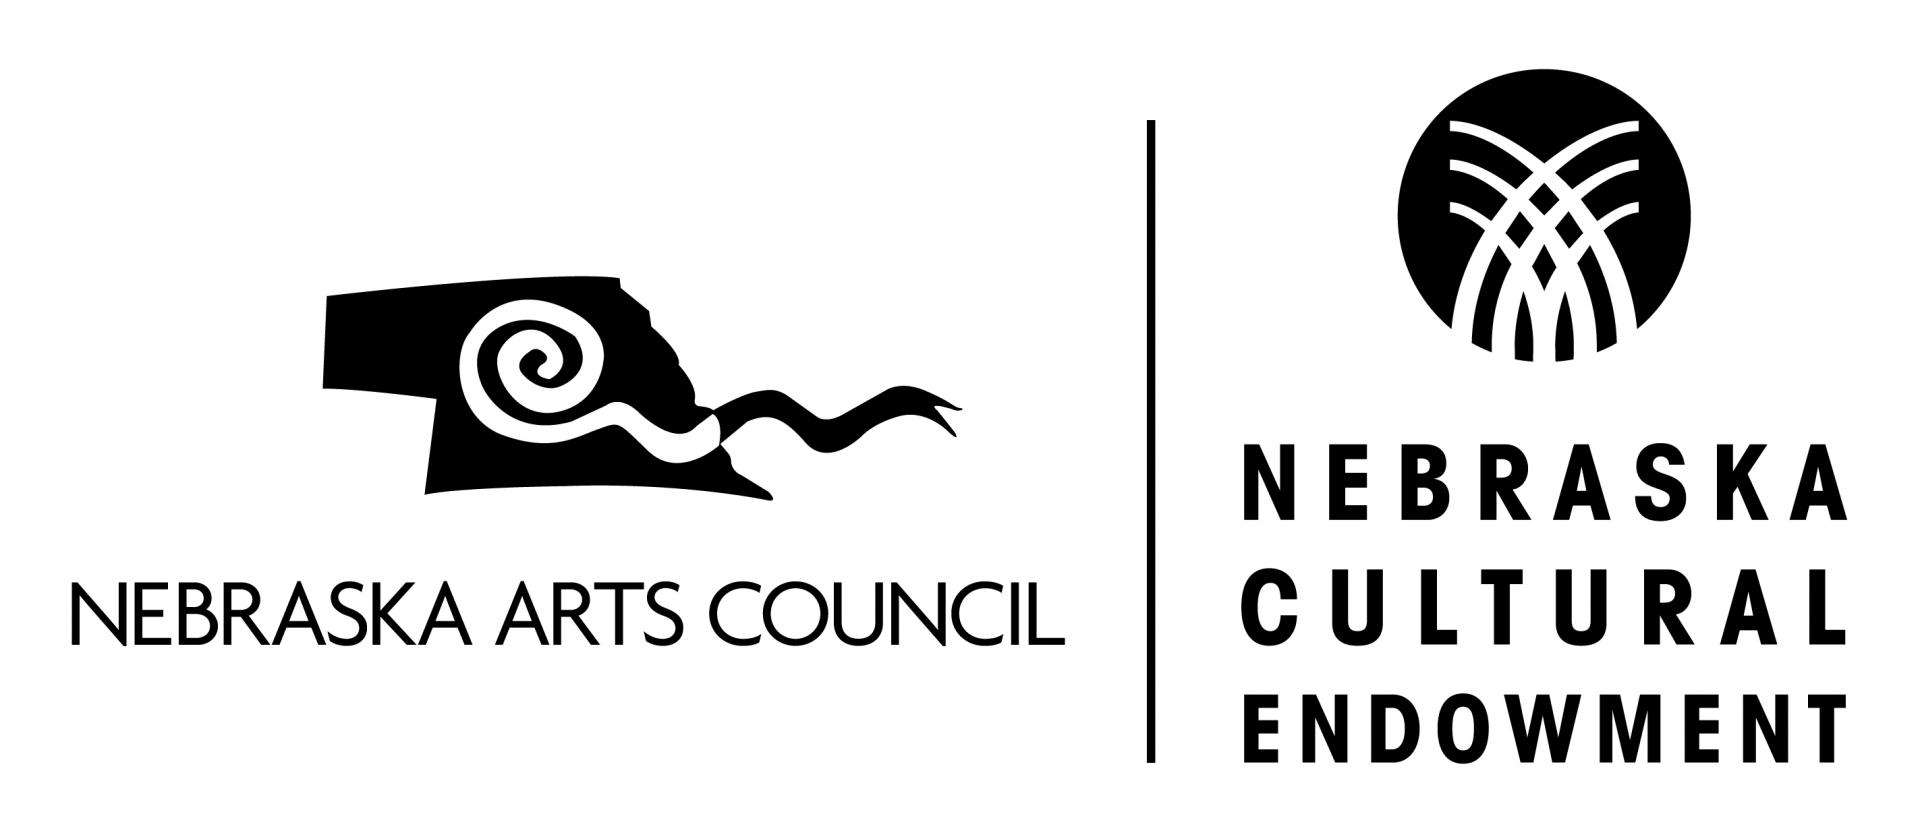 Nebraska Arts Council logo